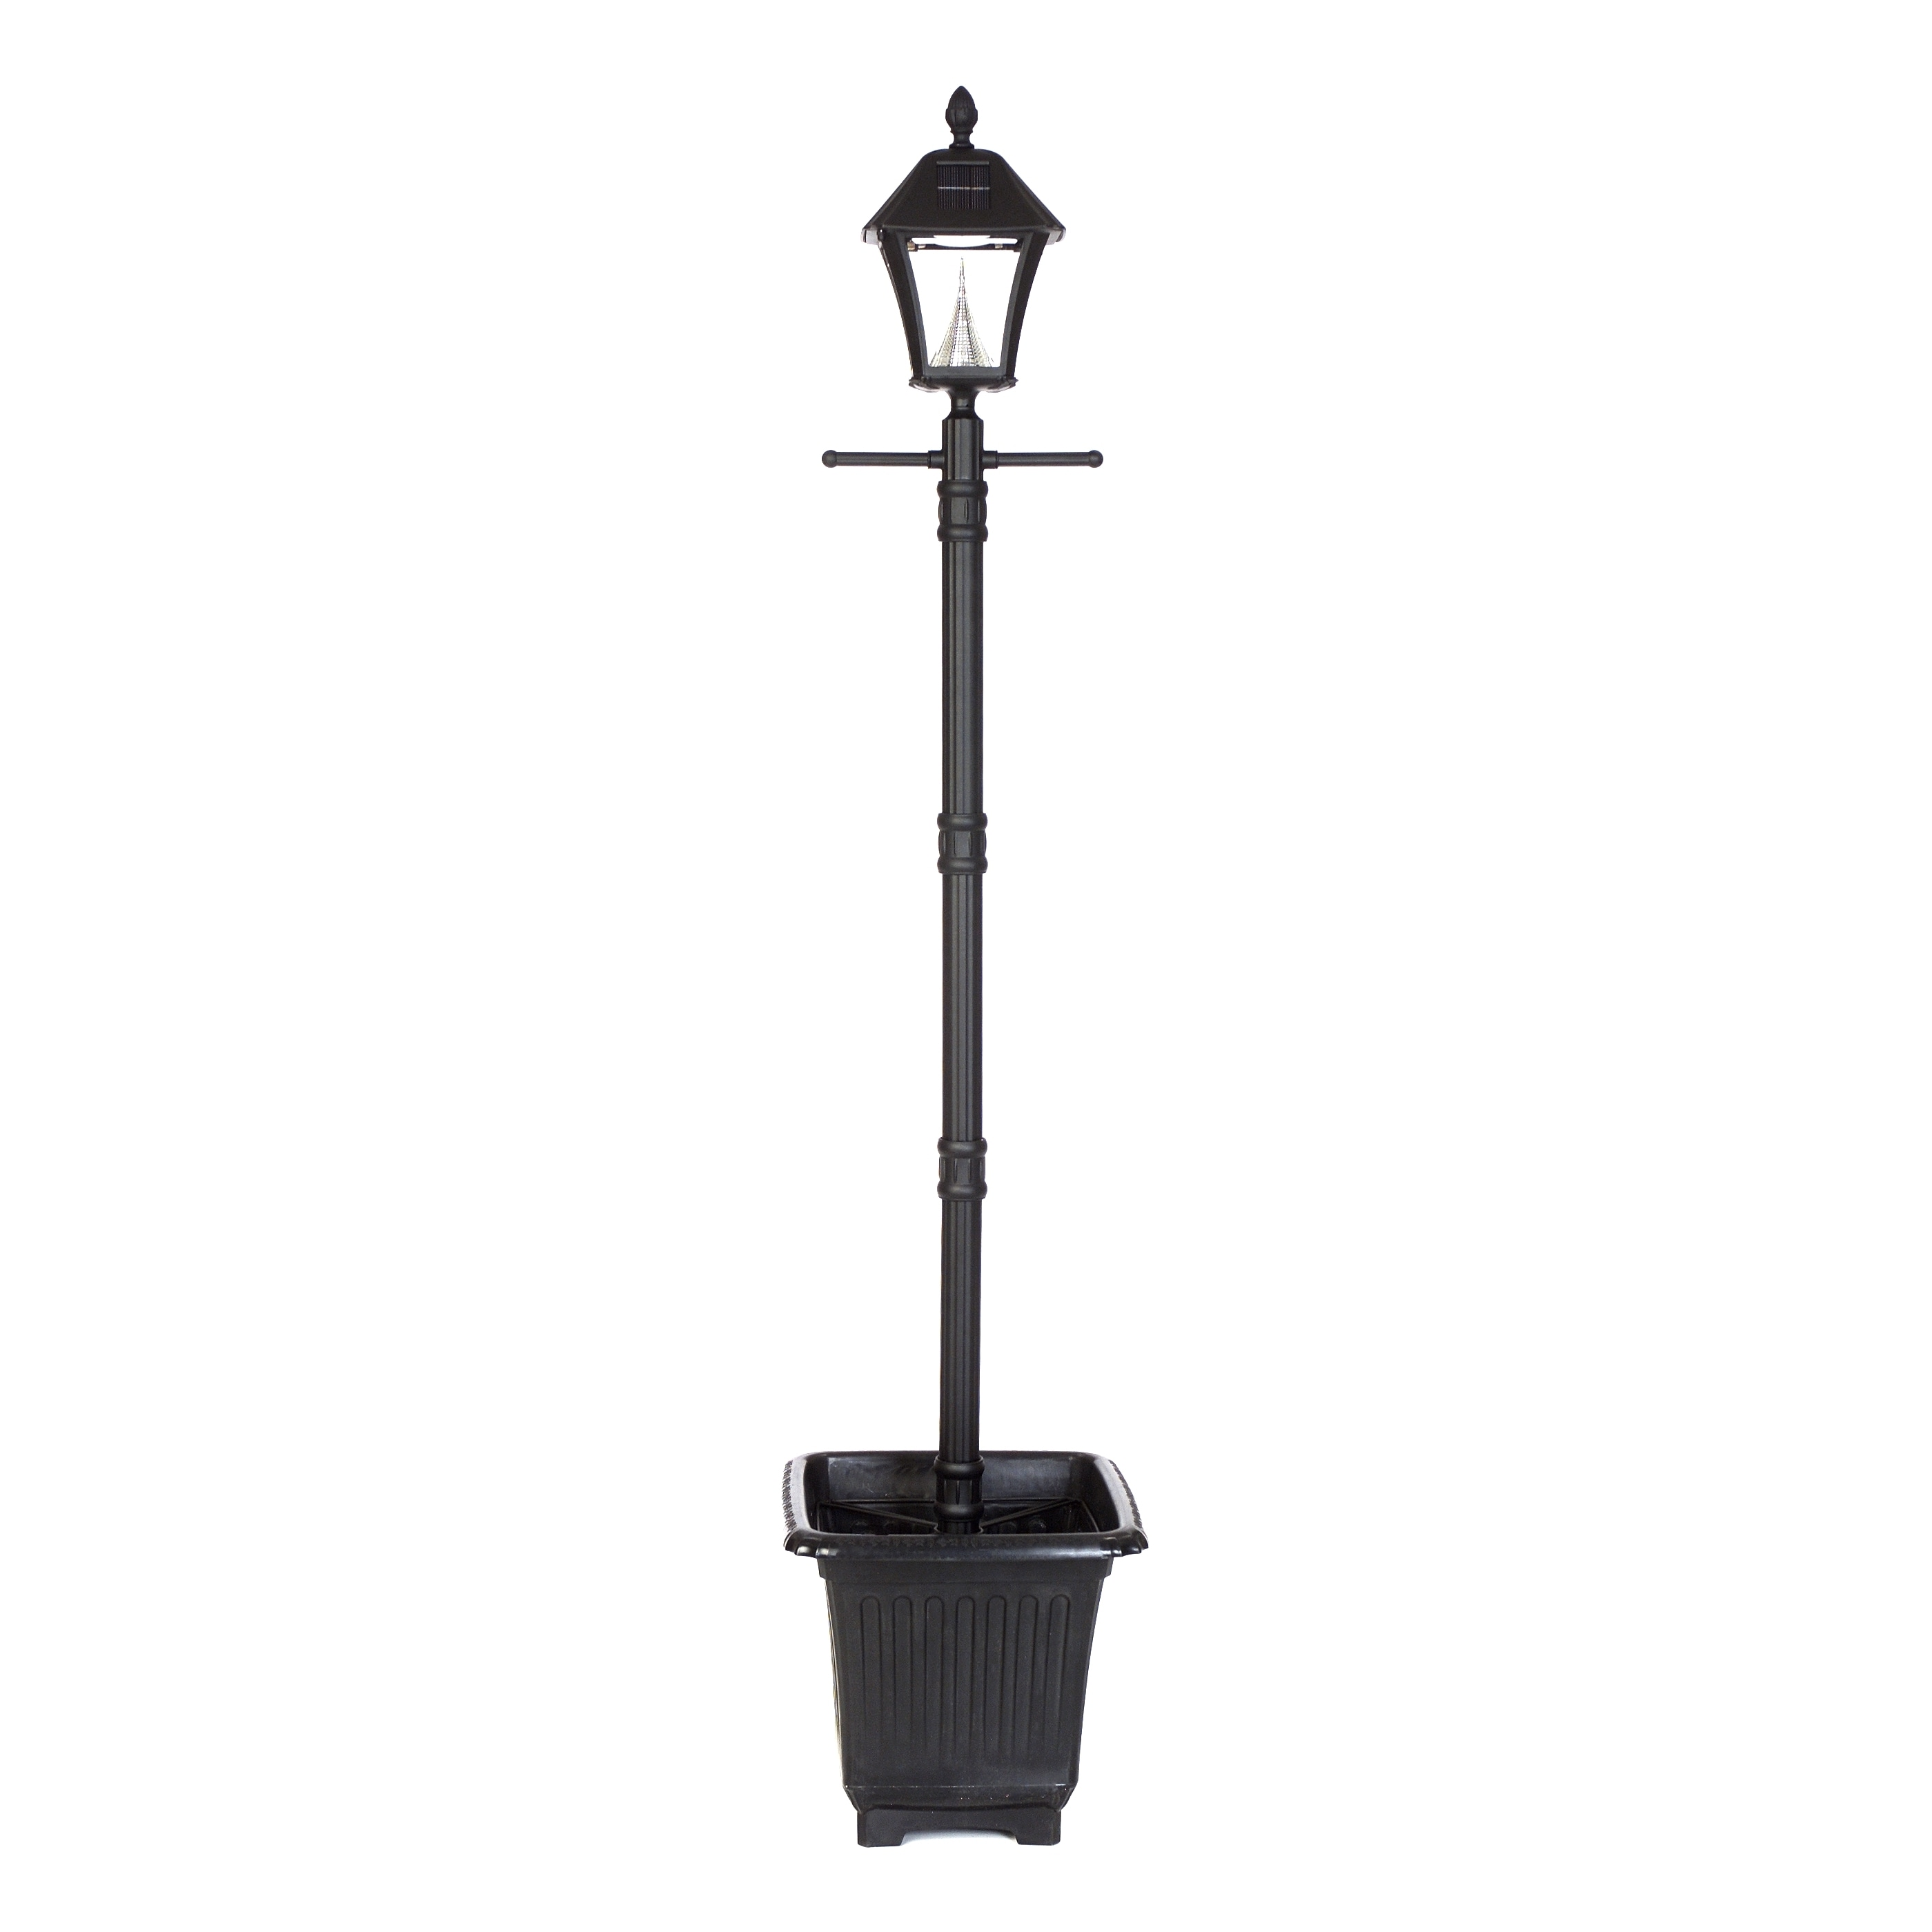 black landscape lights future exterior post exquisite lanterns light outd modern alluring remodel lighting decor solar spot home walmart depot twin ideas for